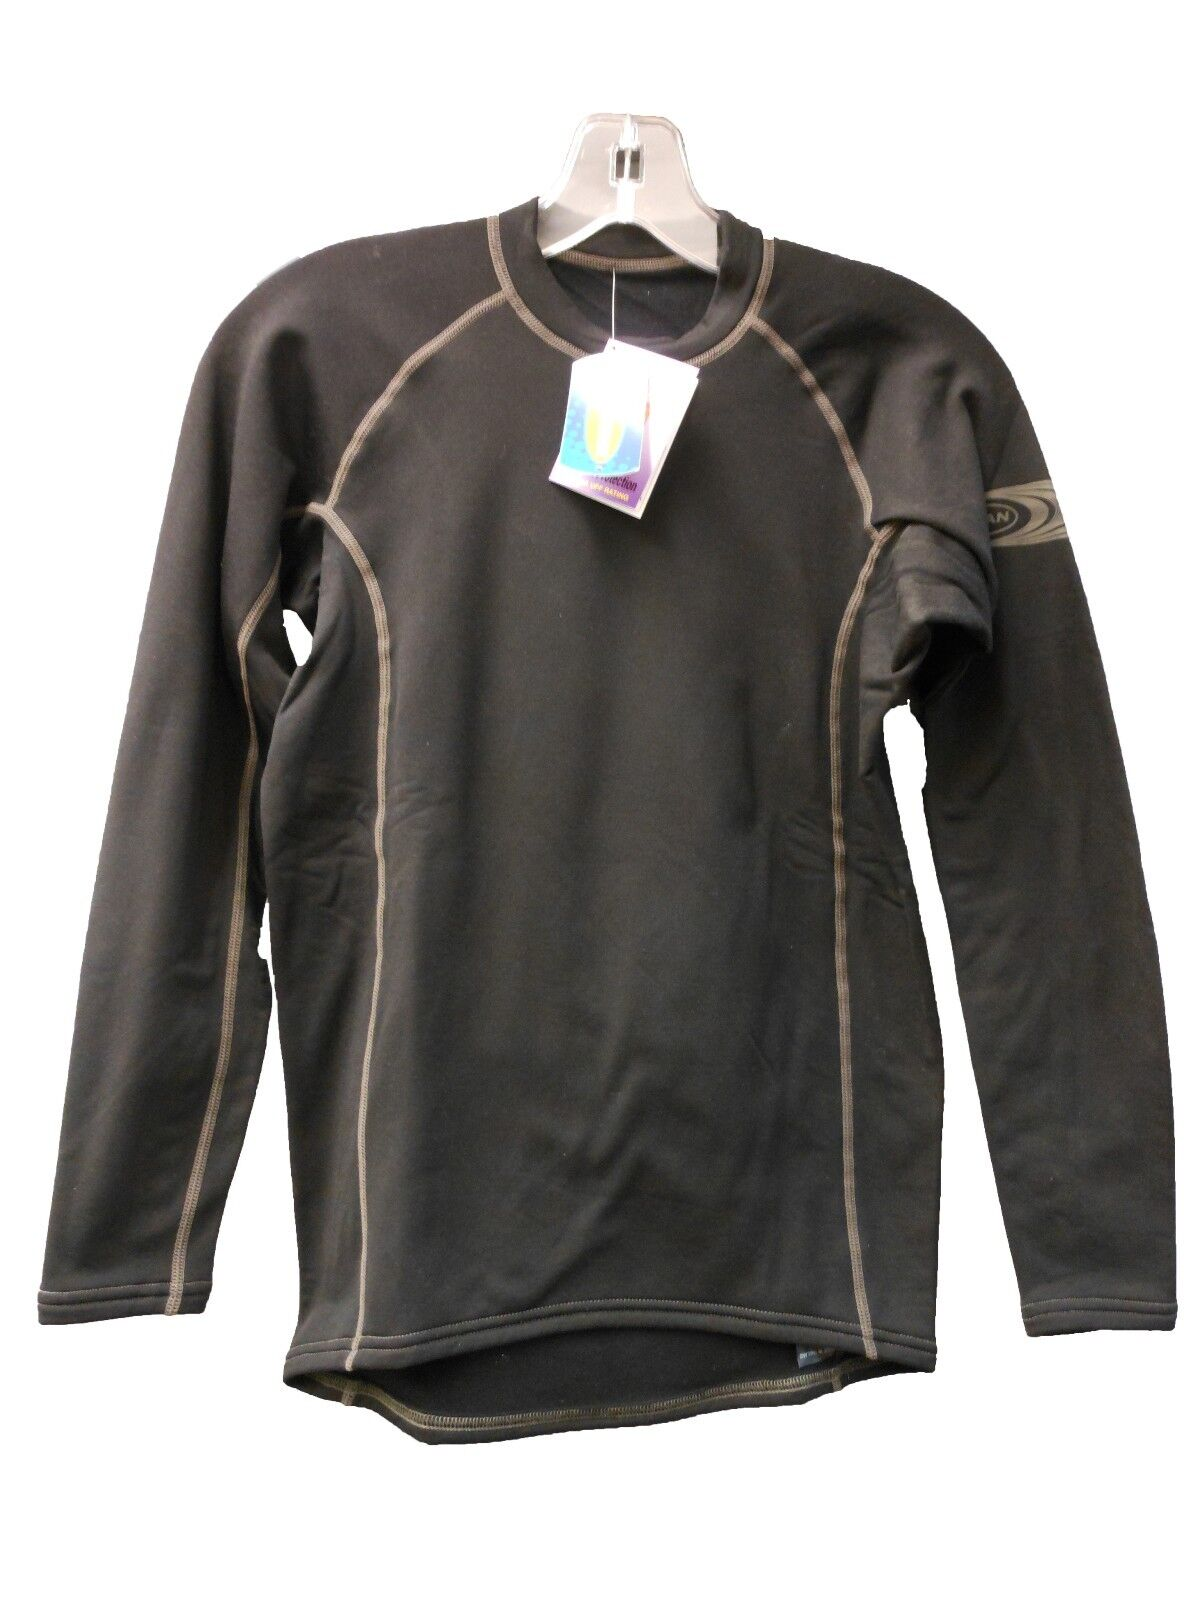 RONSTAN THERMAL TOP ( CL21)